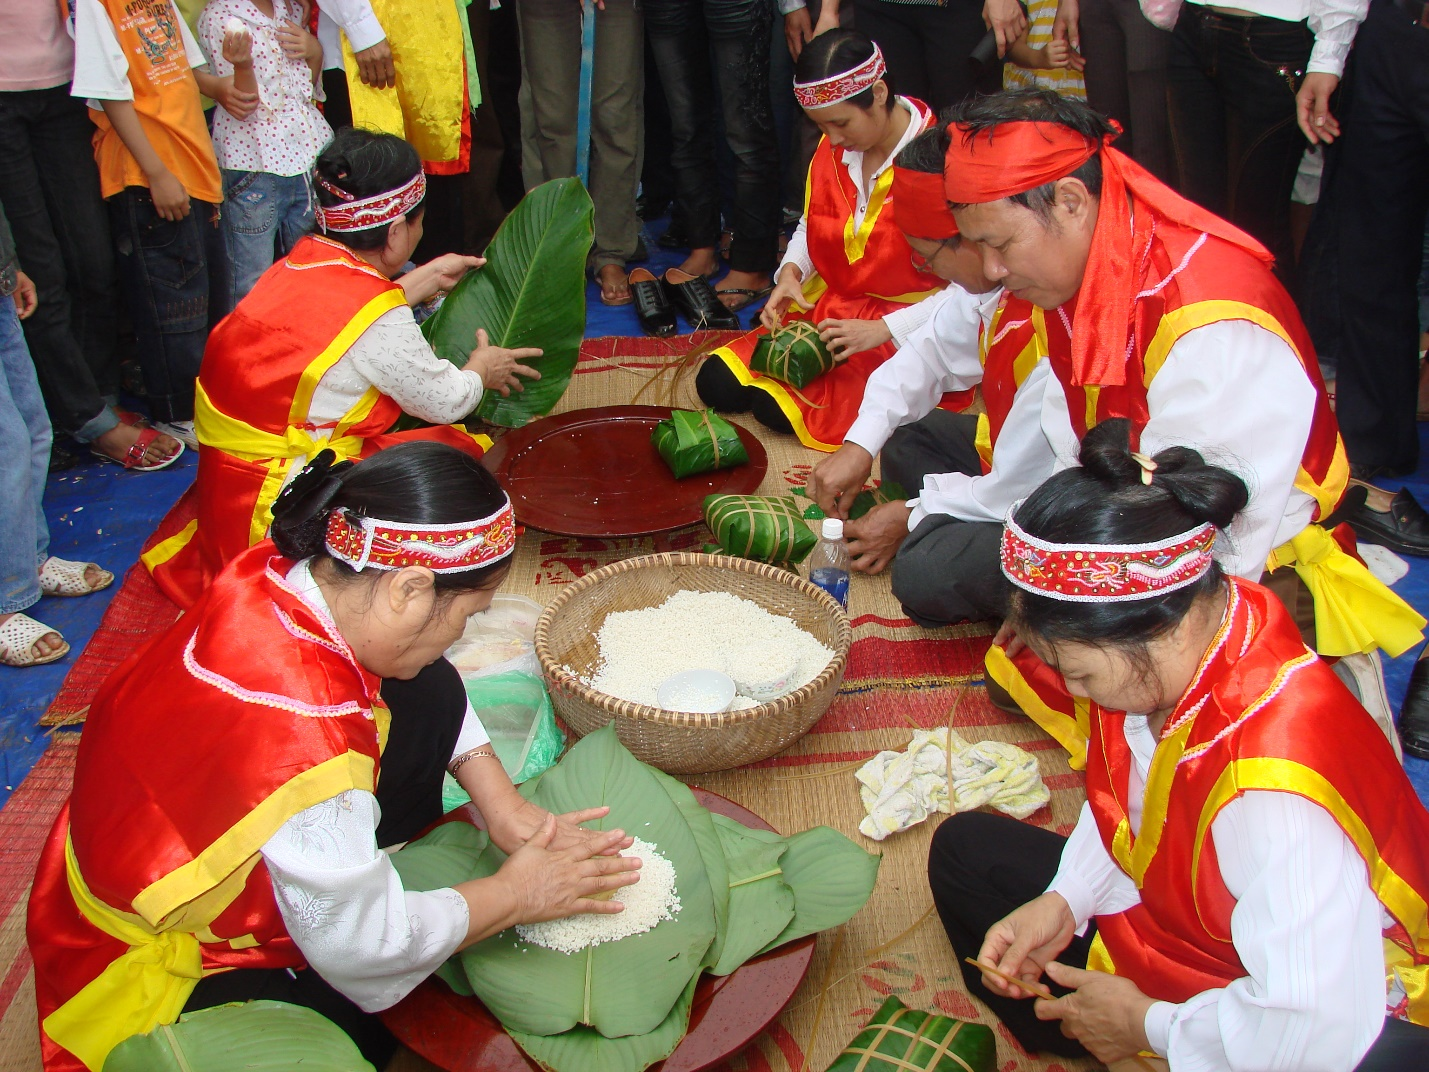 Banh Chung- making contest in festival